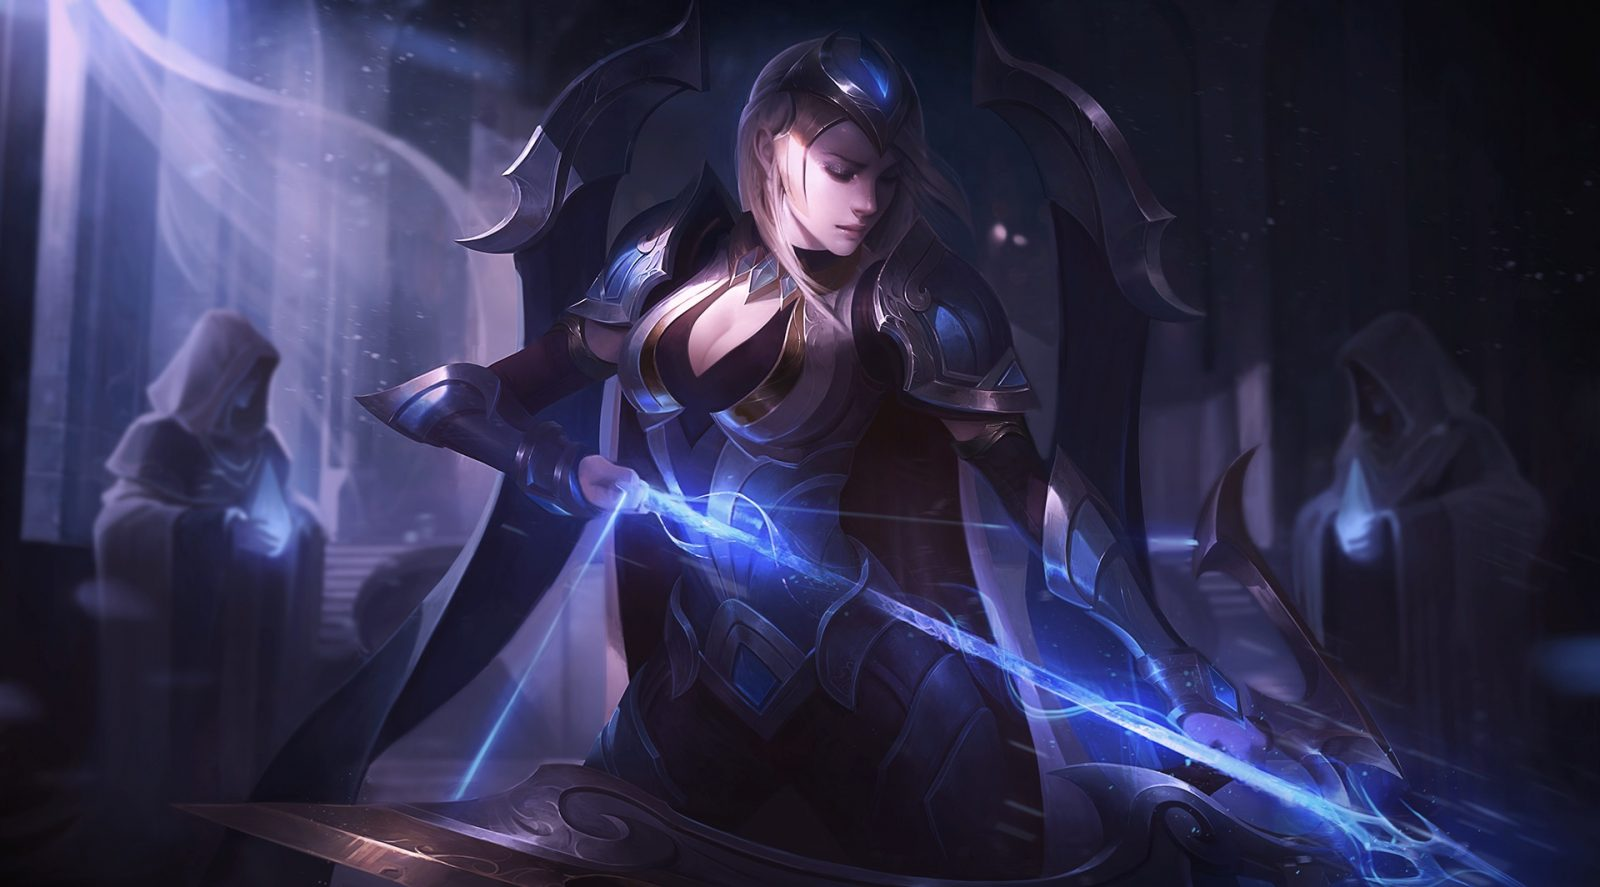 Championship Ashe | Buy League of Legends Rare Skin - SmurfMania.com